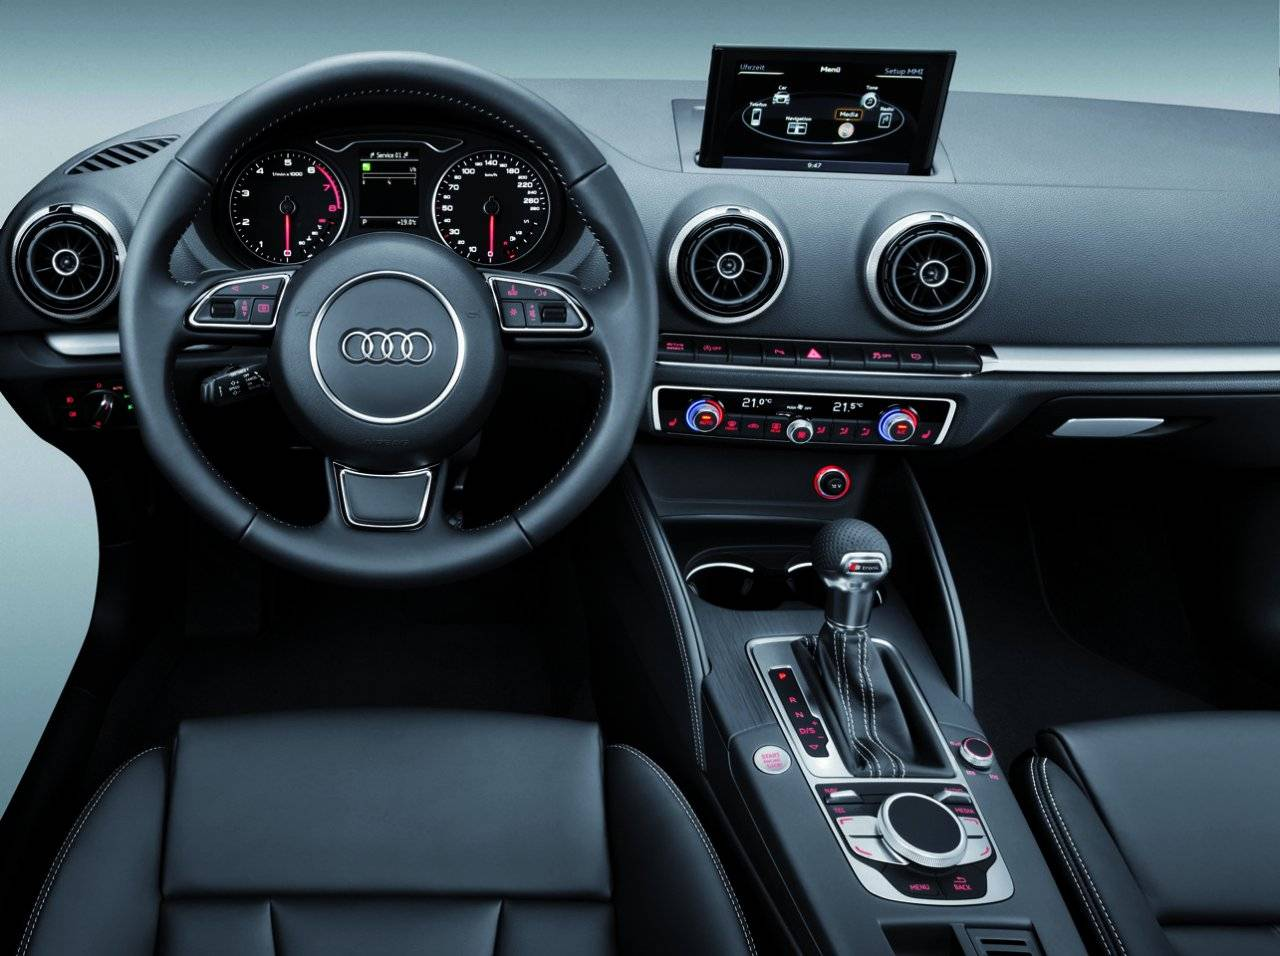 interieur mmi en glimp nieuwe audi a3 onthuld autonieuws. Black Bedroom Furniture Sets. Home Design Ideas